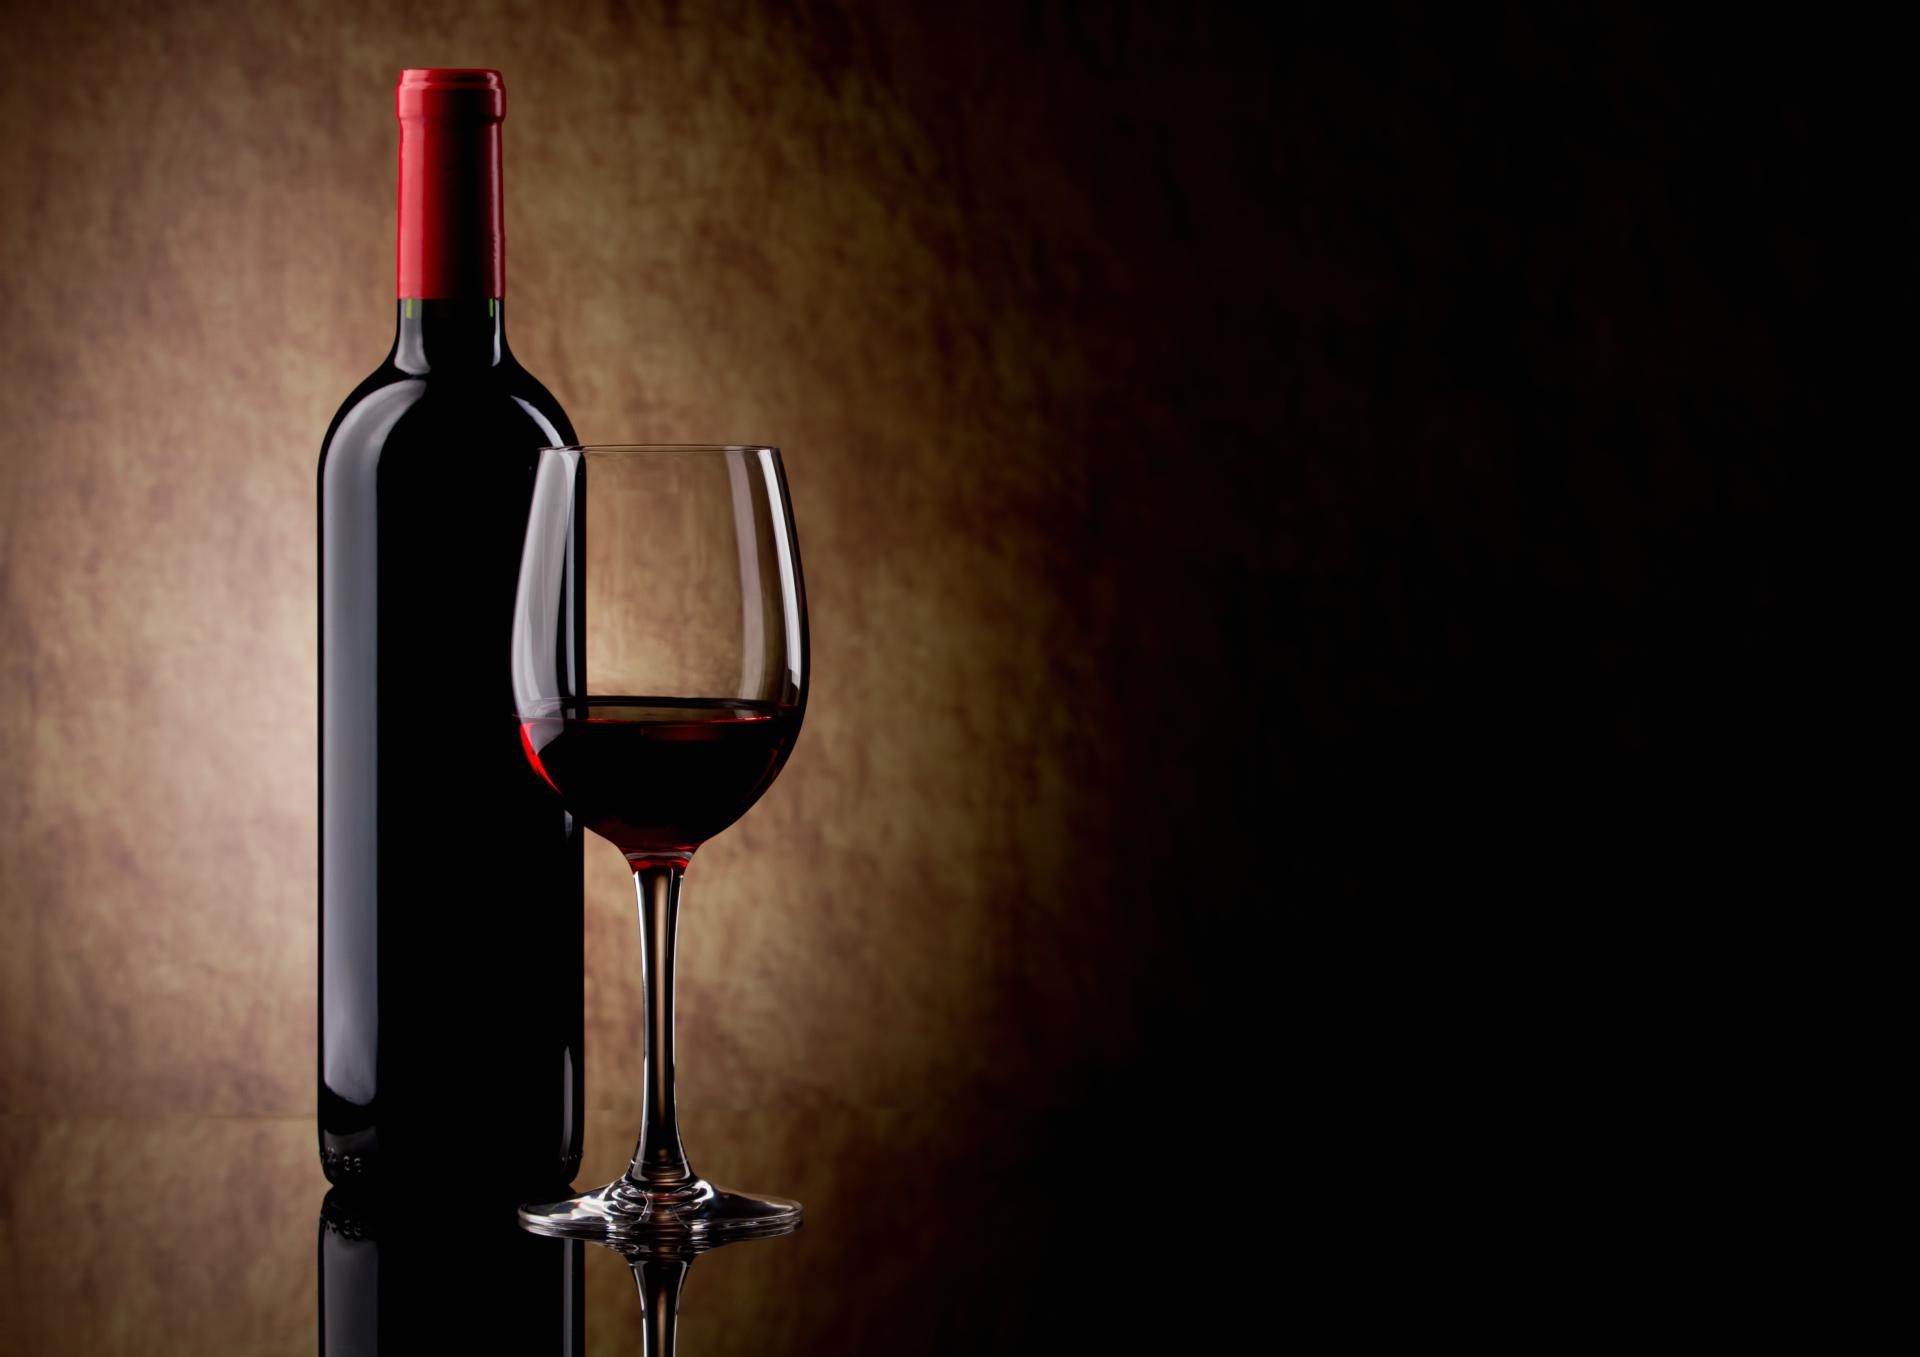 wallpaper-red-wine-glass-and-bottle